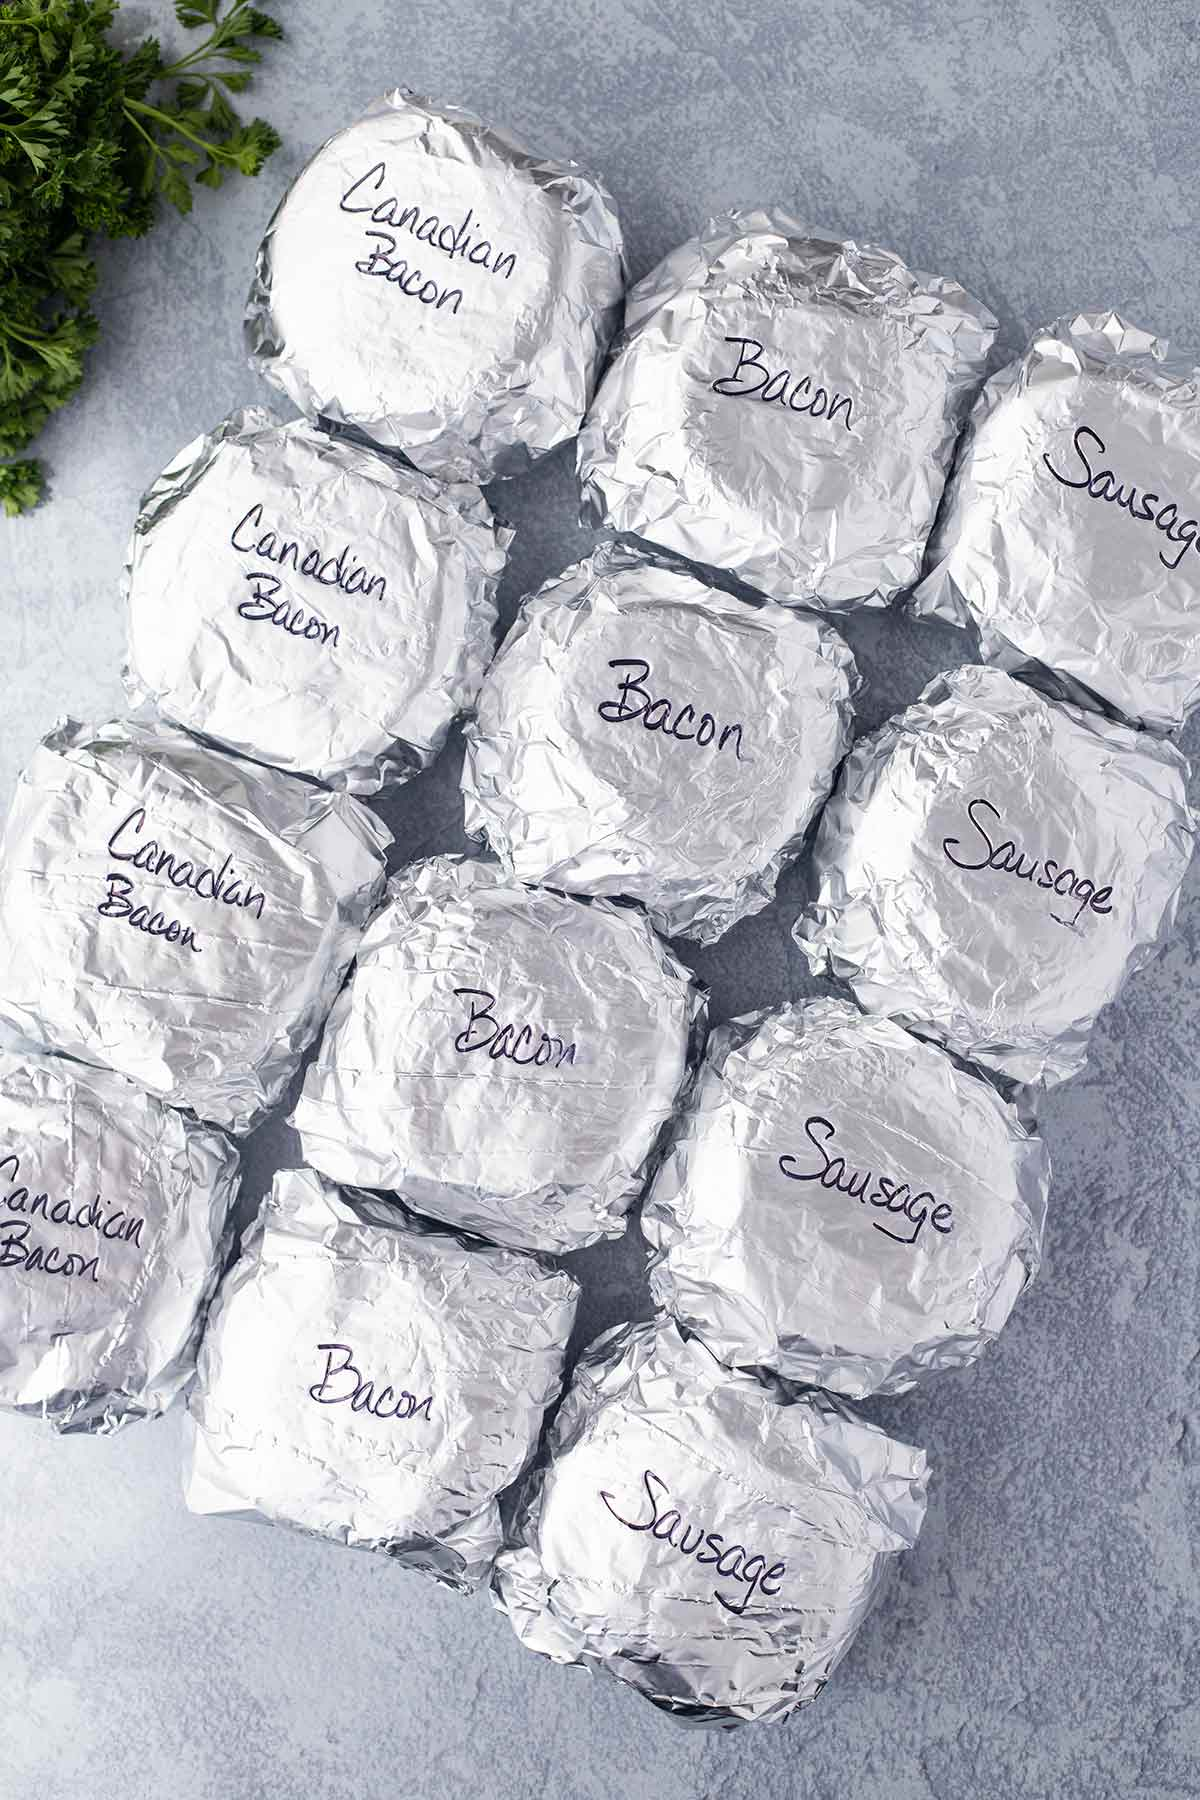 Overhead shot showing a dozen wrapped sandwiches that have been labeled according to the type of meat used.